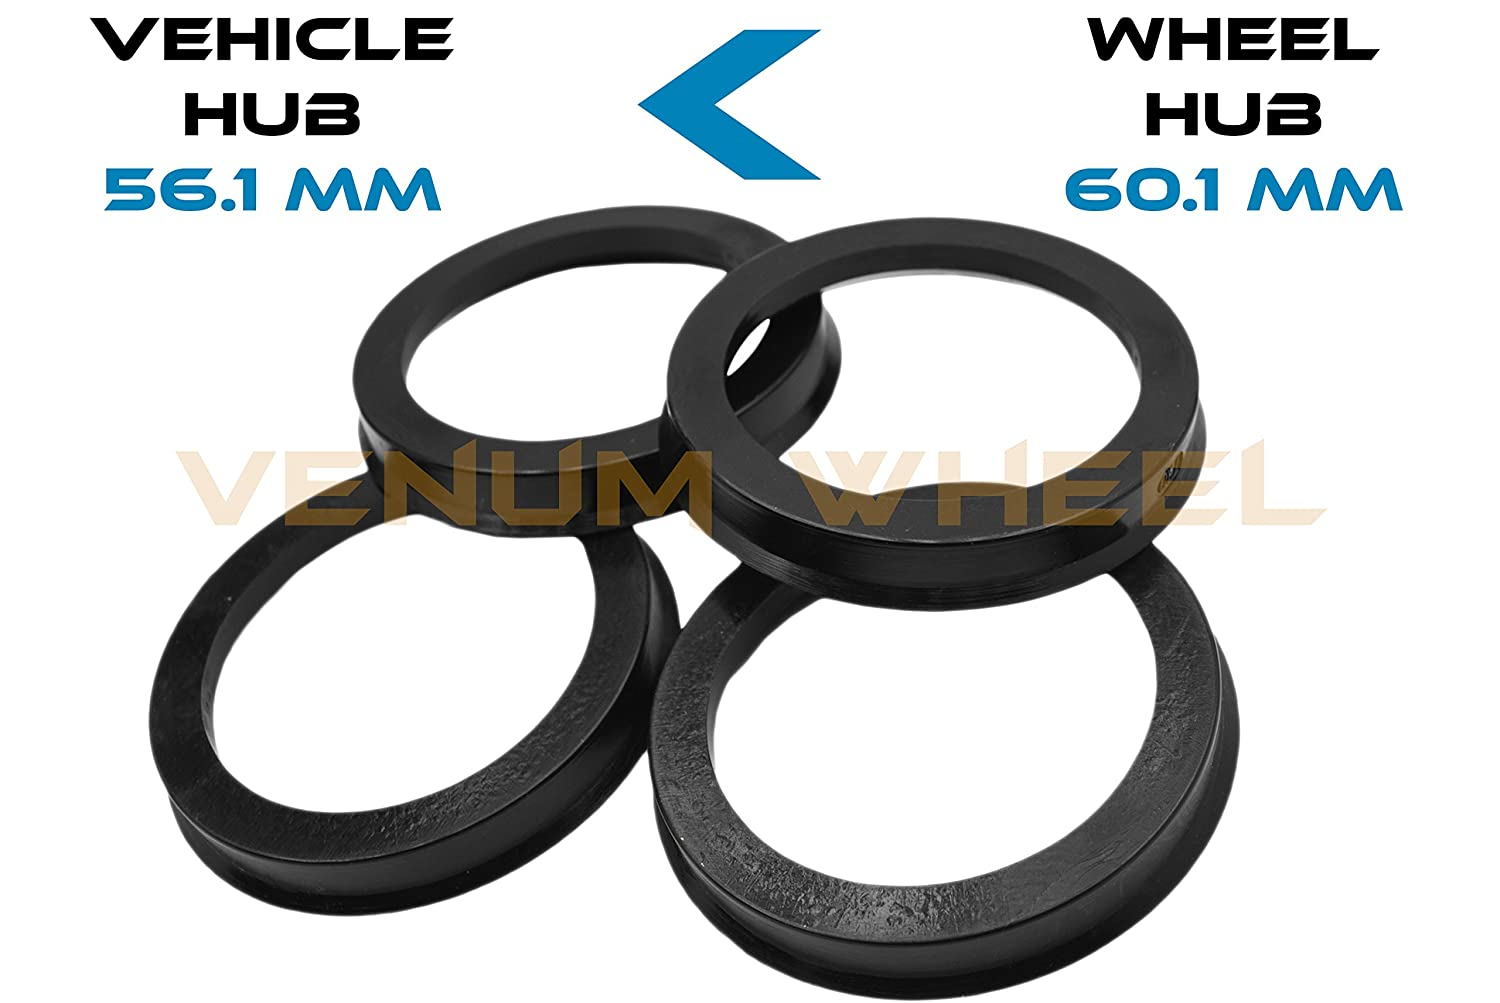 4 Hub Centric Rings 56.1 ID To 60.1 OD Black Polycarbonate Material ( Vehicle 56.1mm to Wheel 60.1) VENUM WHEEL ACCESSORIES